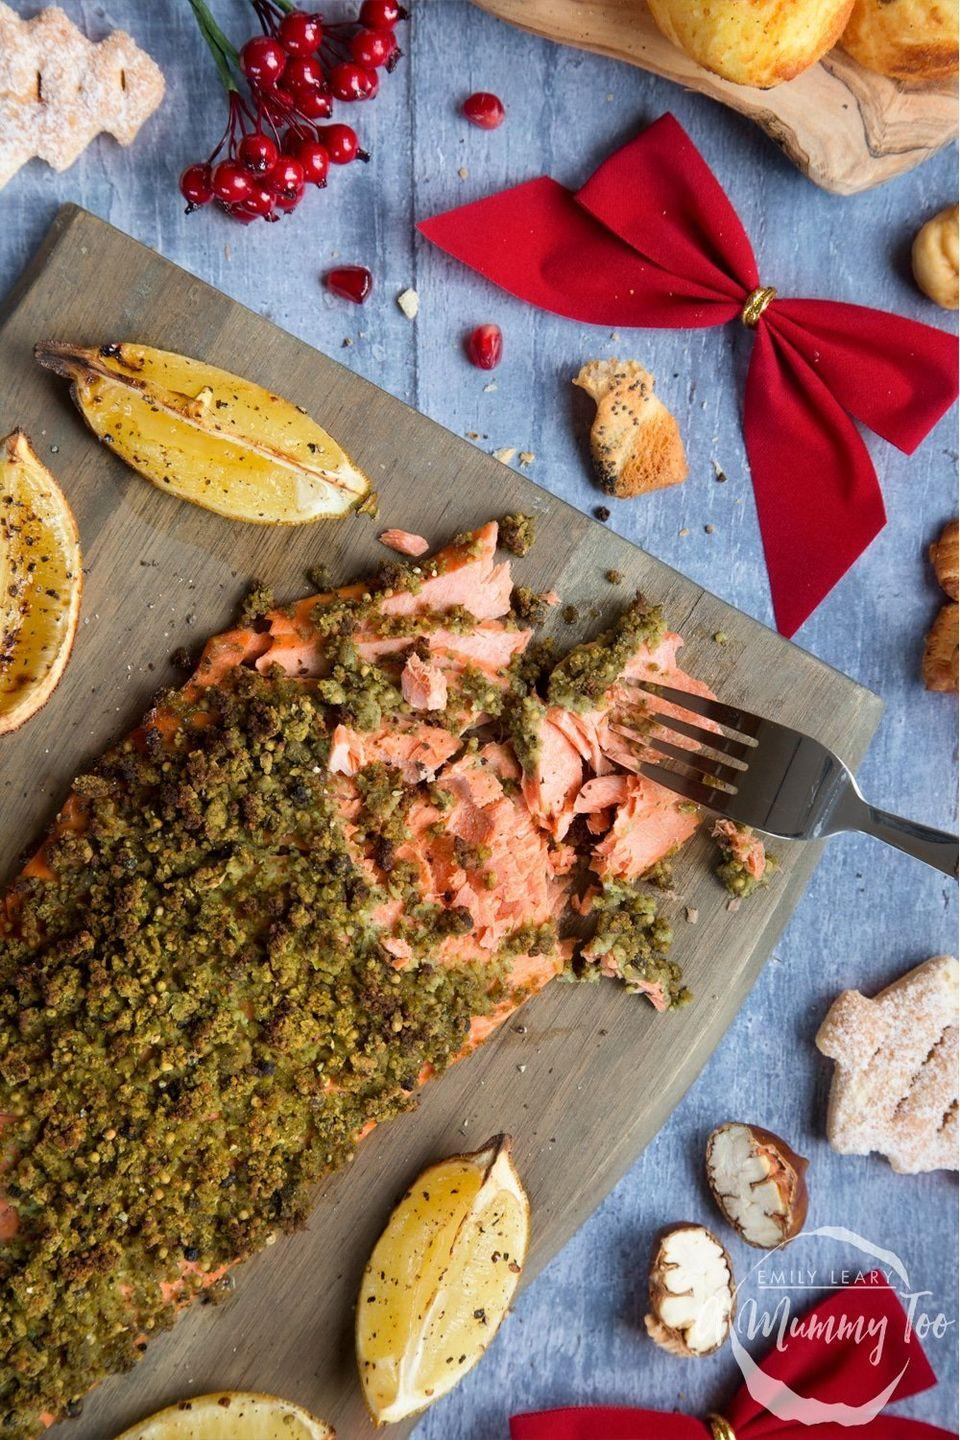 """<p>Get the <a href=""""https://www.amummytoo.co.uk/chestnut-and-pepper-crusted-salmon-fillet/"""" rel=""""nofollow noopener"""" target=""""_blank"""" data-ylk=""""slk:Chestnut & Pepper Crusted Salmon Fillet"""" class=""""link rapid-noclick-resp"""">Chestnut & Pepper Crusted Salmon Fillet</a> recipe.</p><p>Recipe from <a href=""""https://www.amummytoo.co.uk/"""" rel=""""nofollow noopener"""" target=""""_blank"""" data-ylk=""""slk:A Mummy Too"""" class=""""link rapid-noclick-resp"""">A Mummy Too</a>.</p>"""